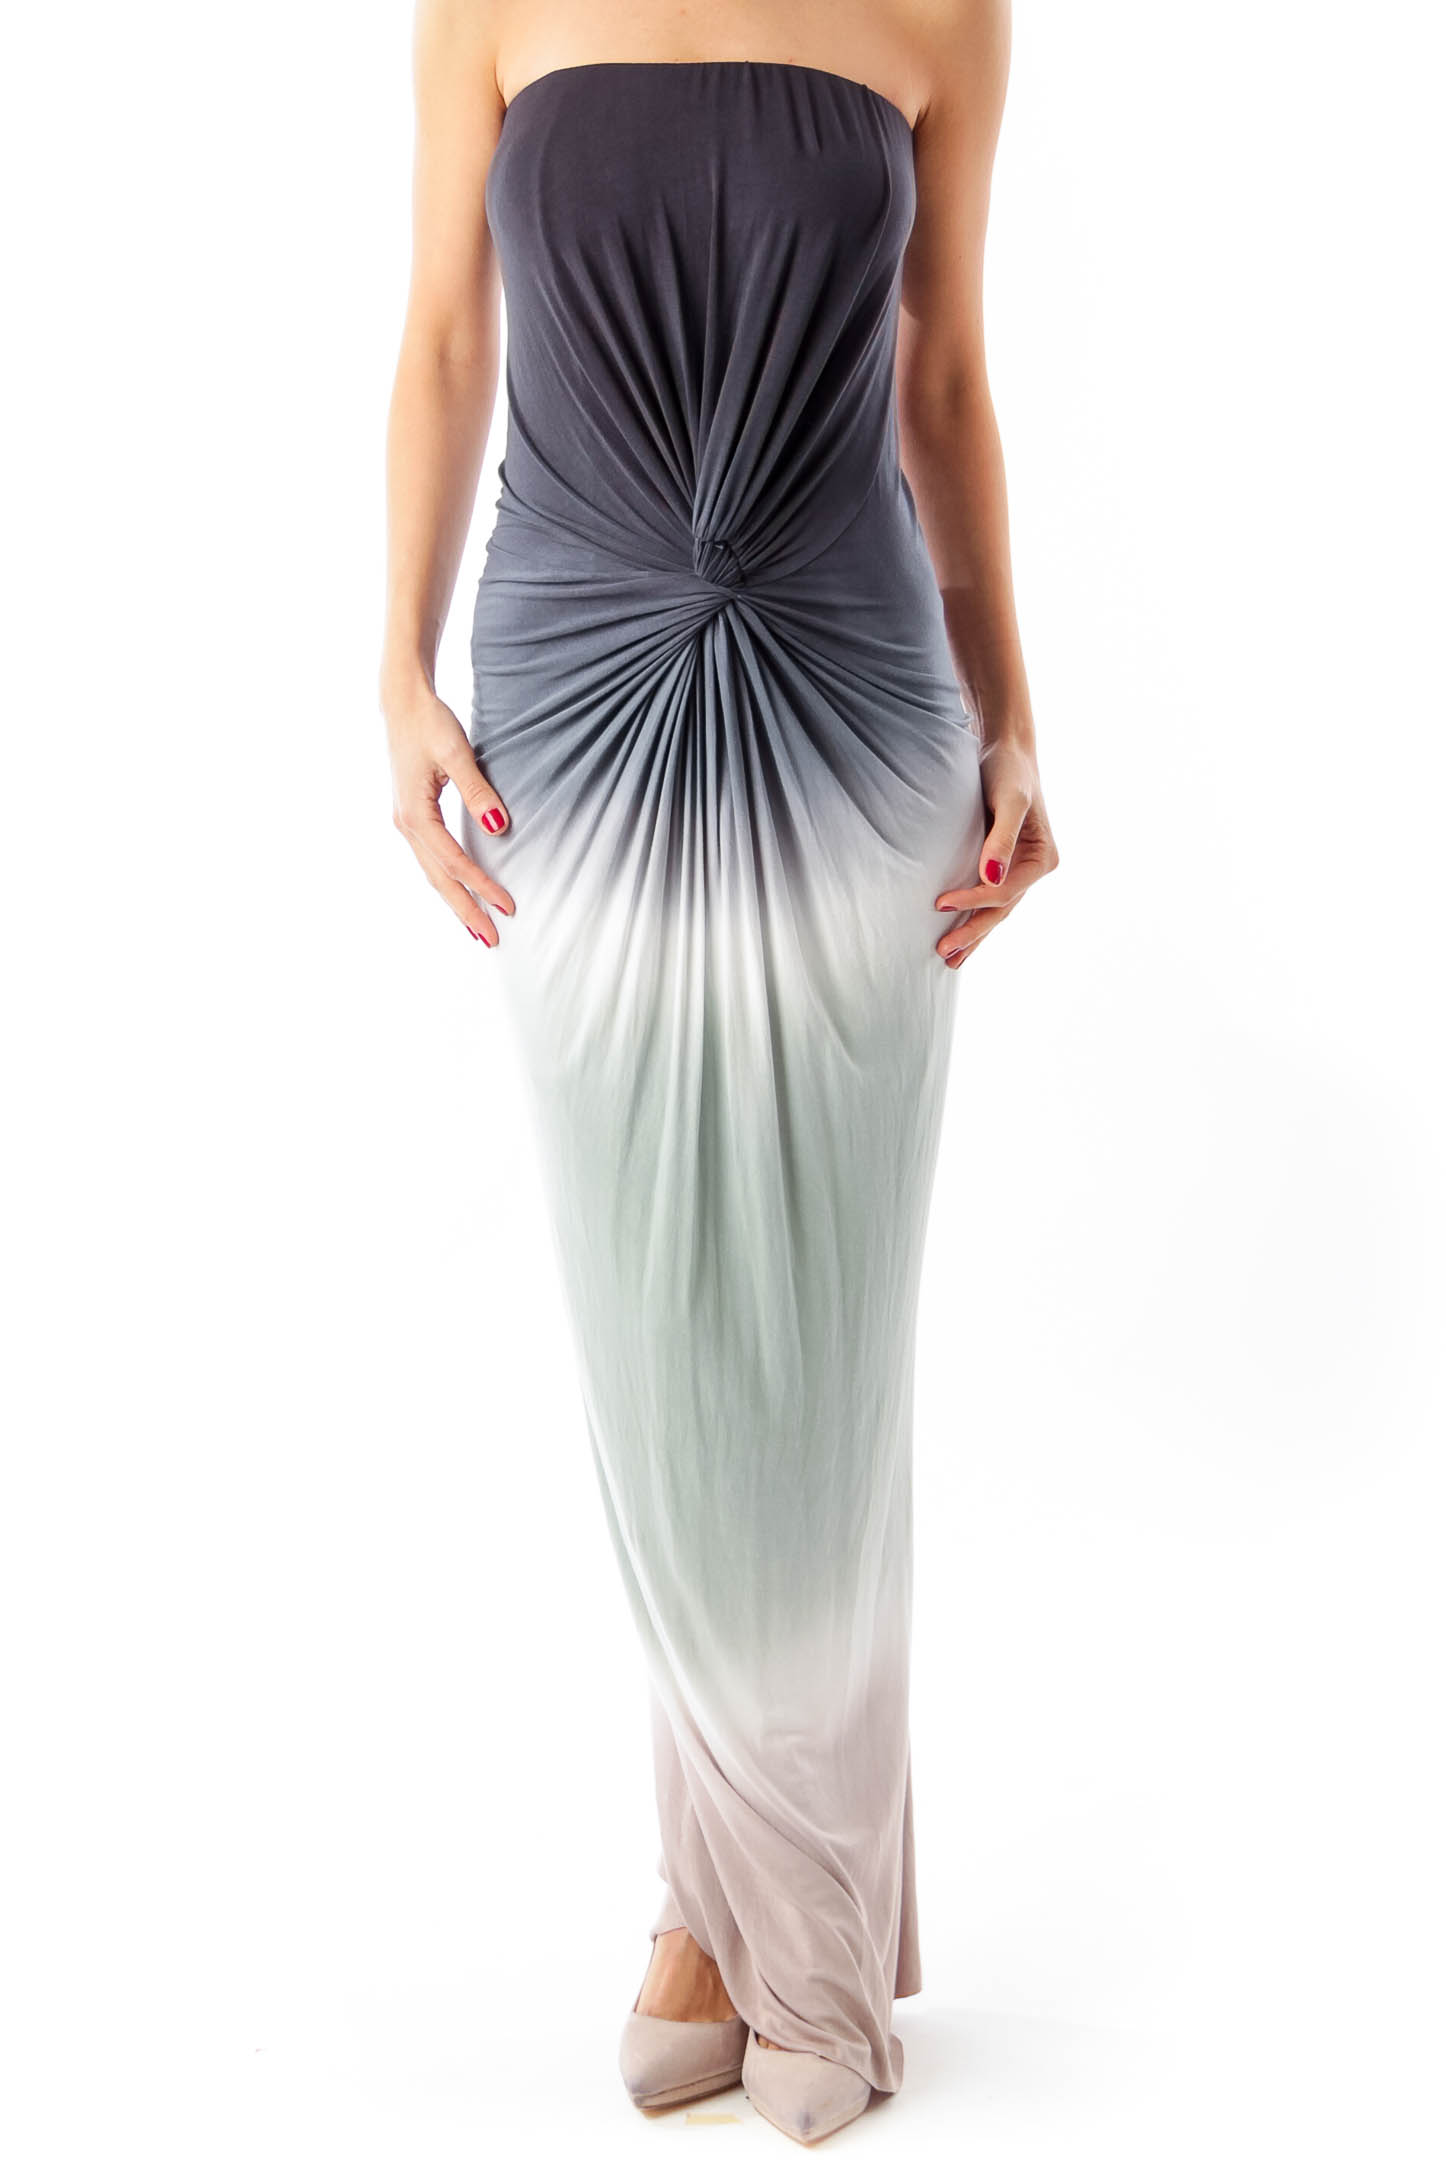 Multi-color Strapless Maxi Dress